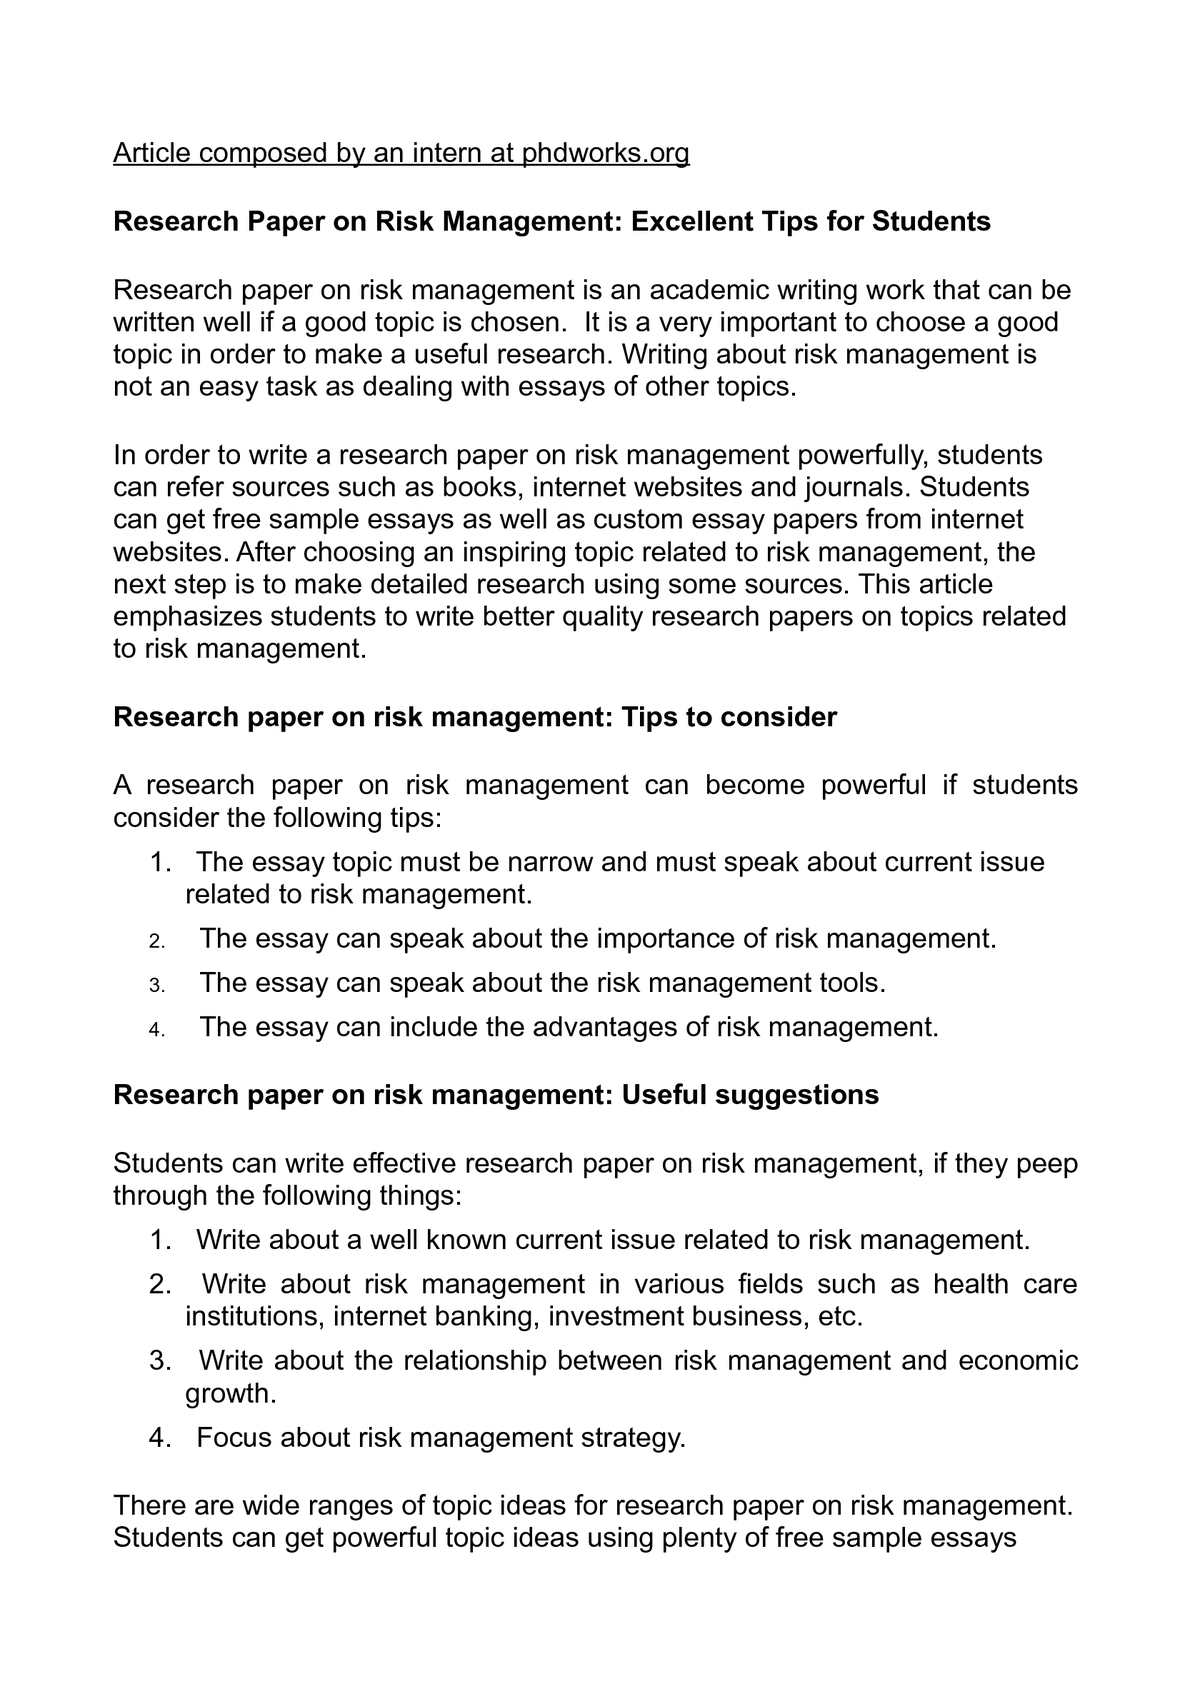 009 P1 Order Researchs Striking Research Papers Full